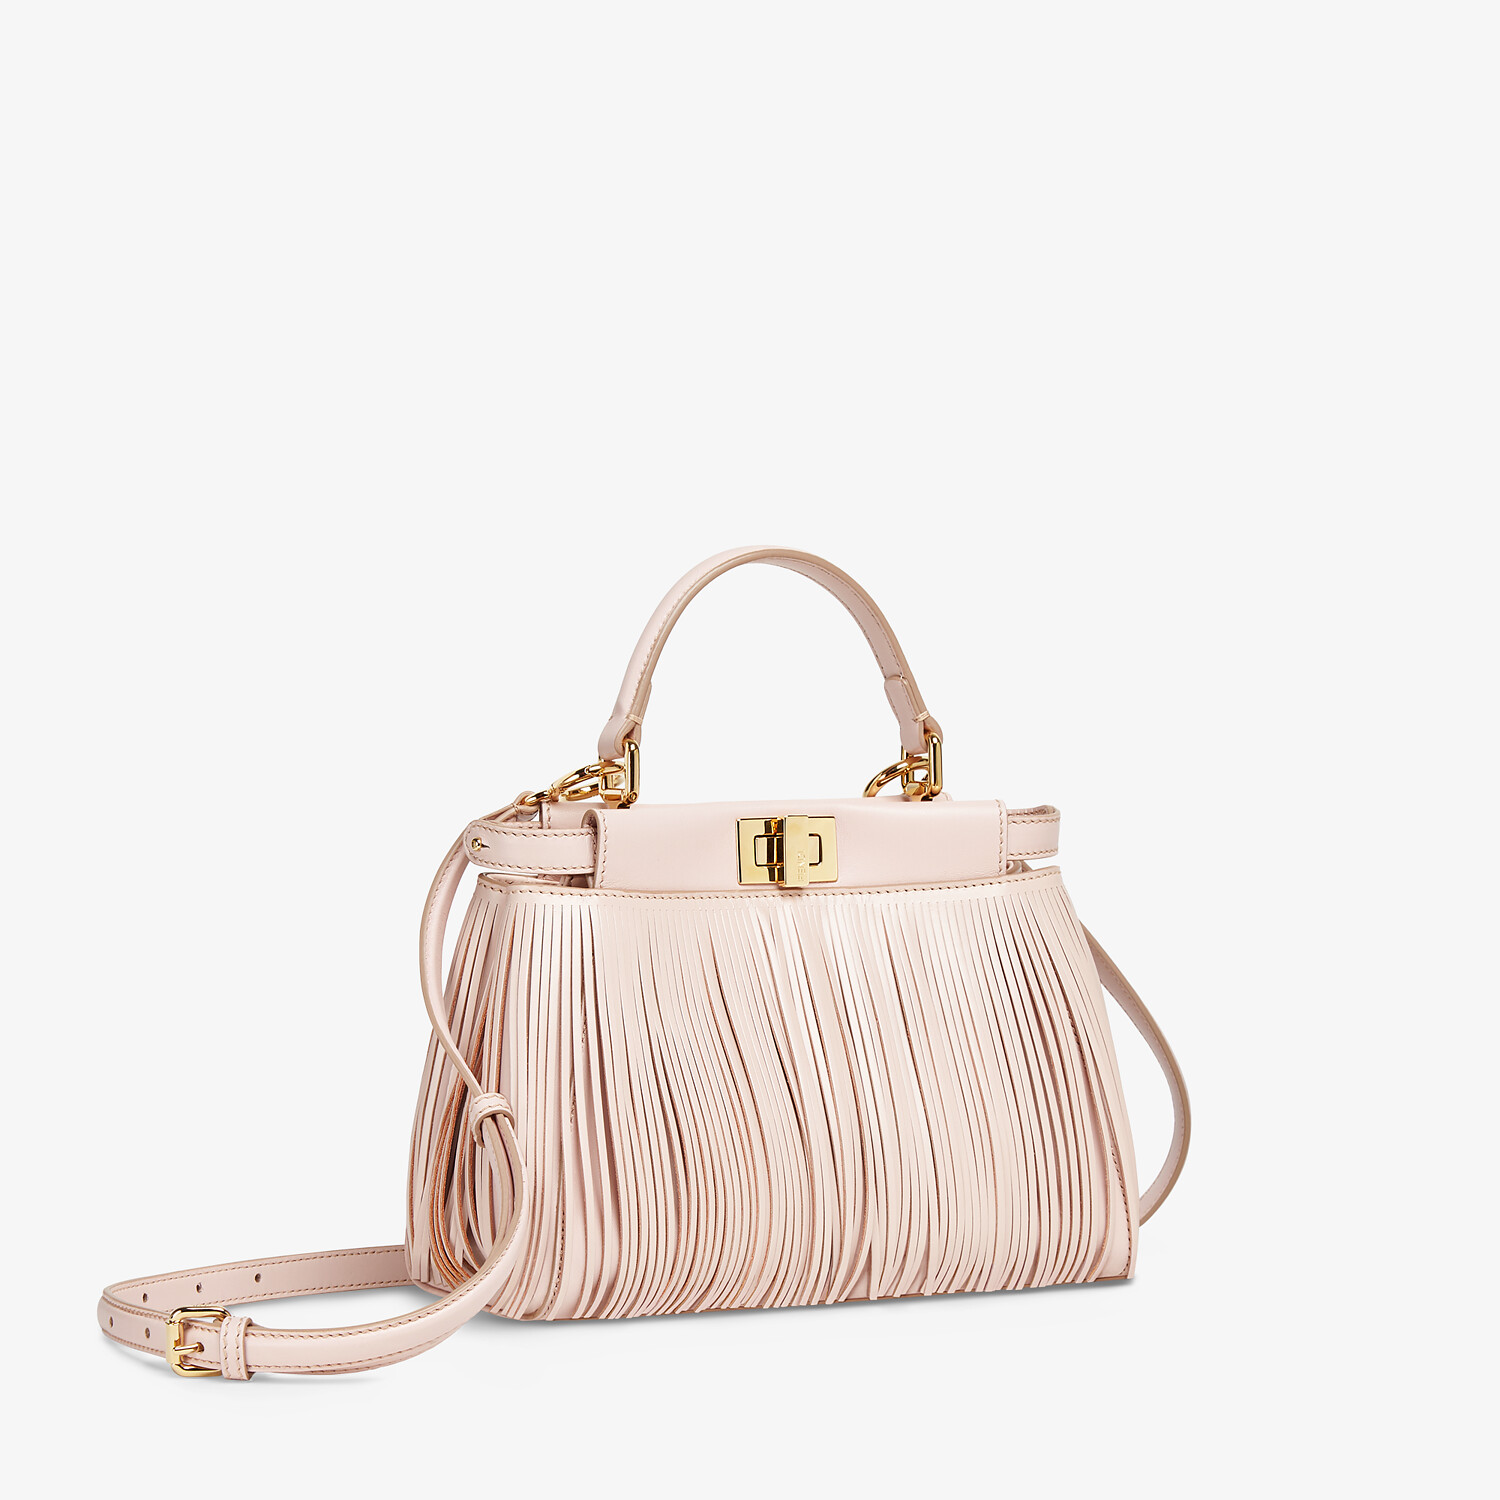 FENDI PEEKABOO ICONIC MINI - Pink leather bag with fringes - view 2 detail